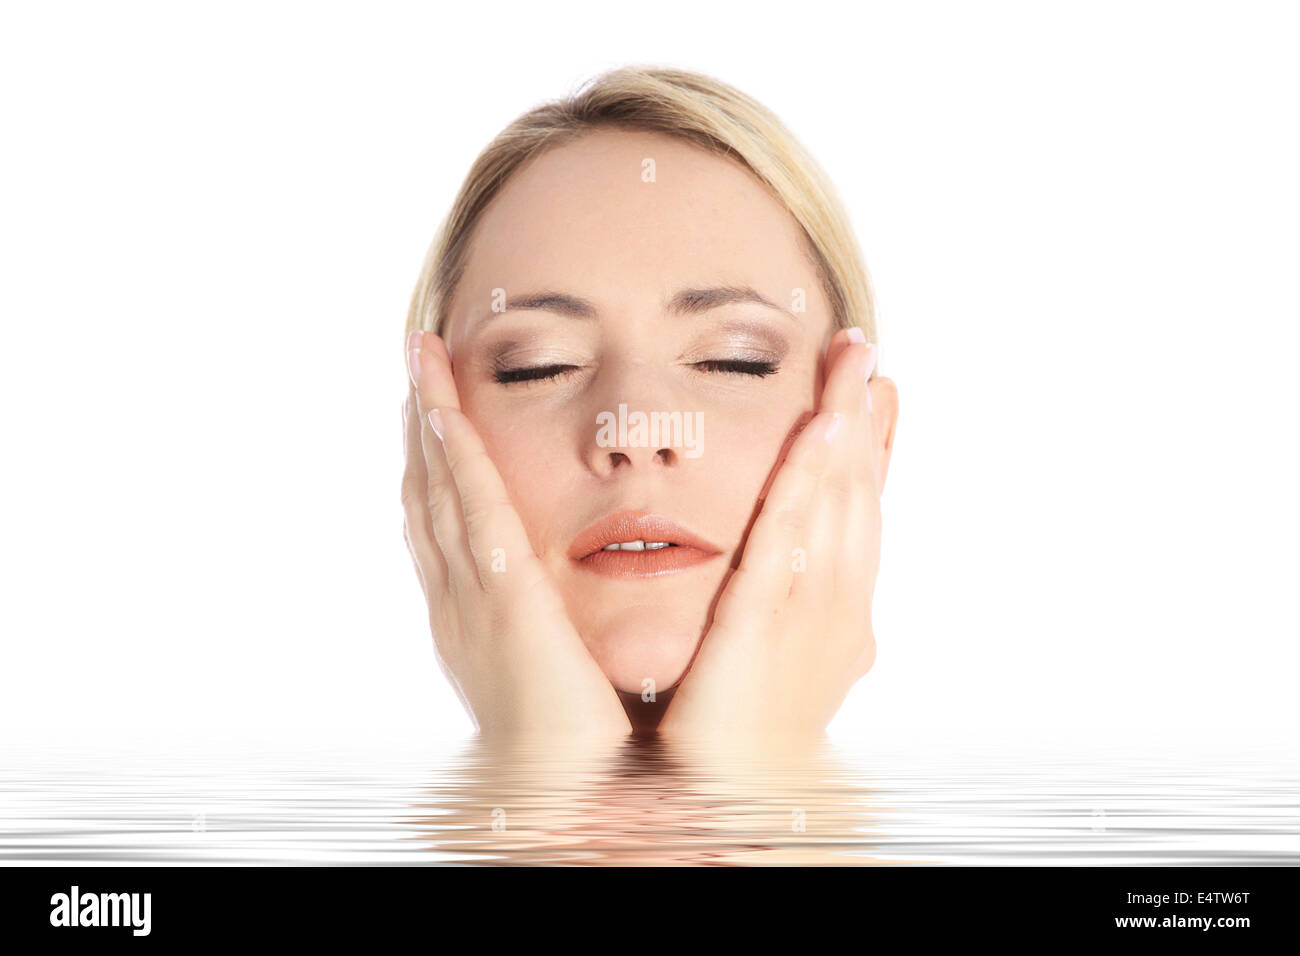 Beautiful blonde emerges from water - Stock Image